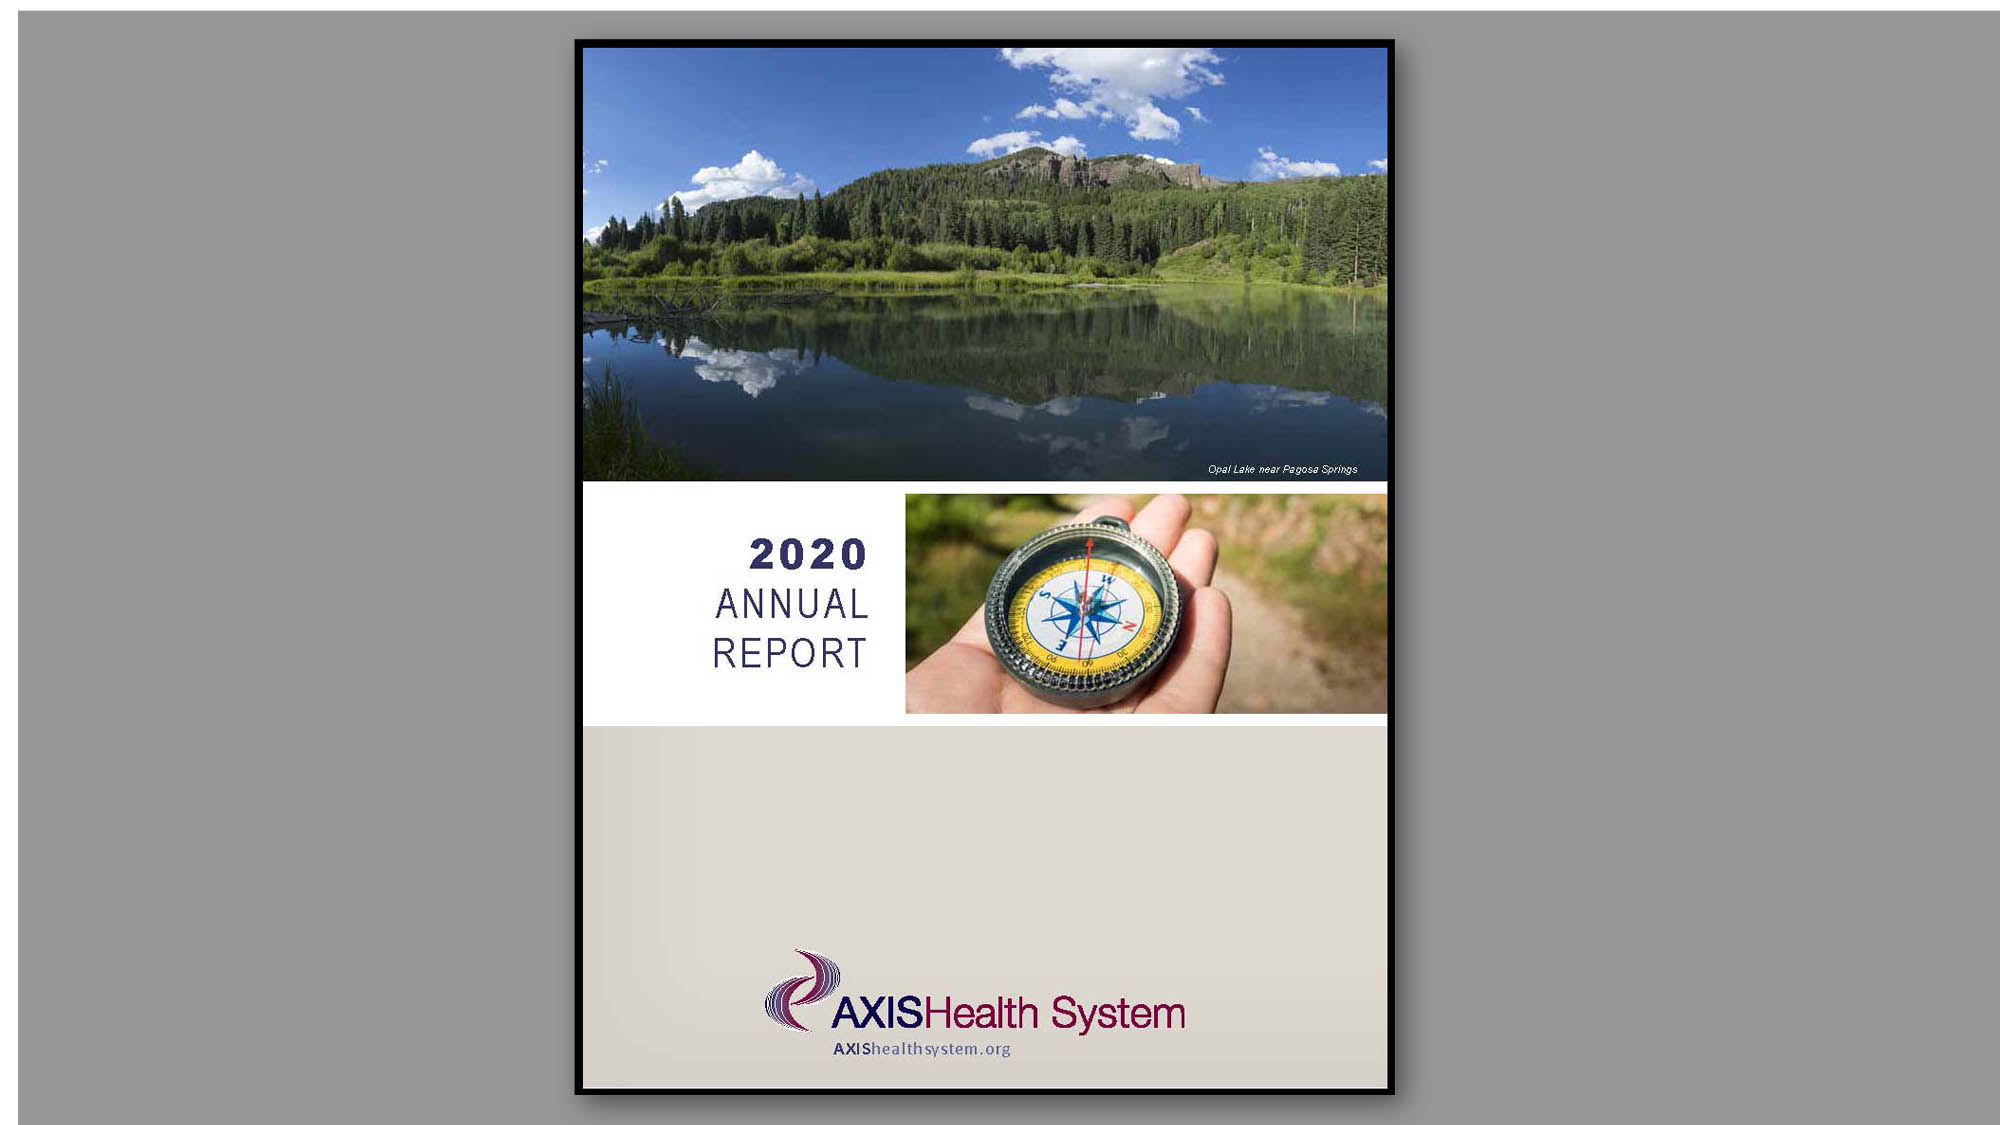 2020 Annual Report Axis Health System